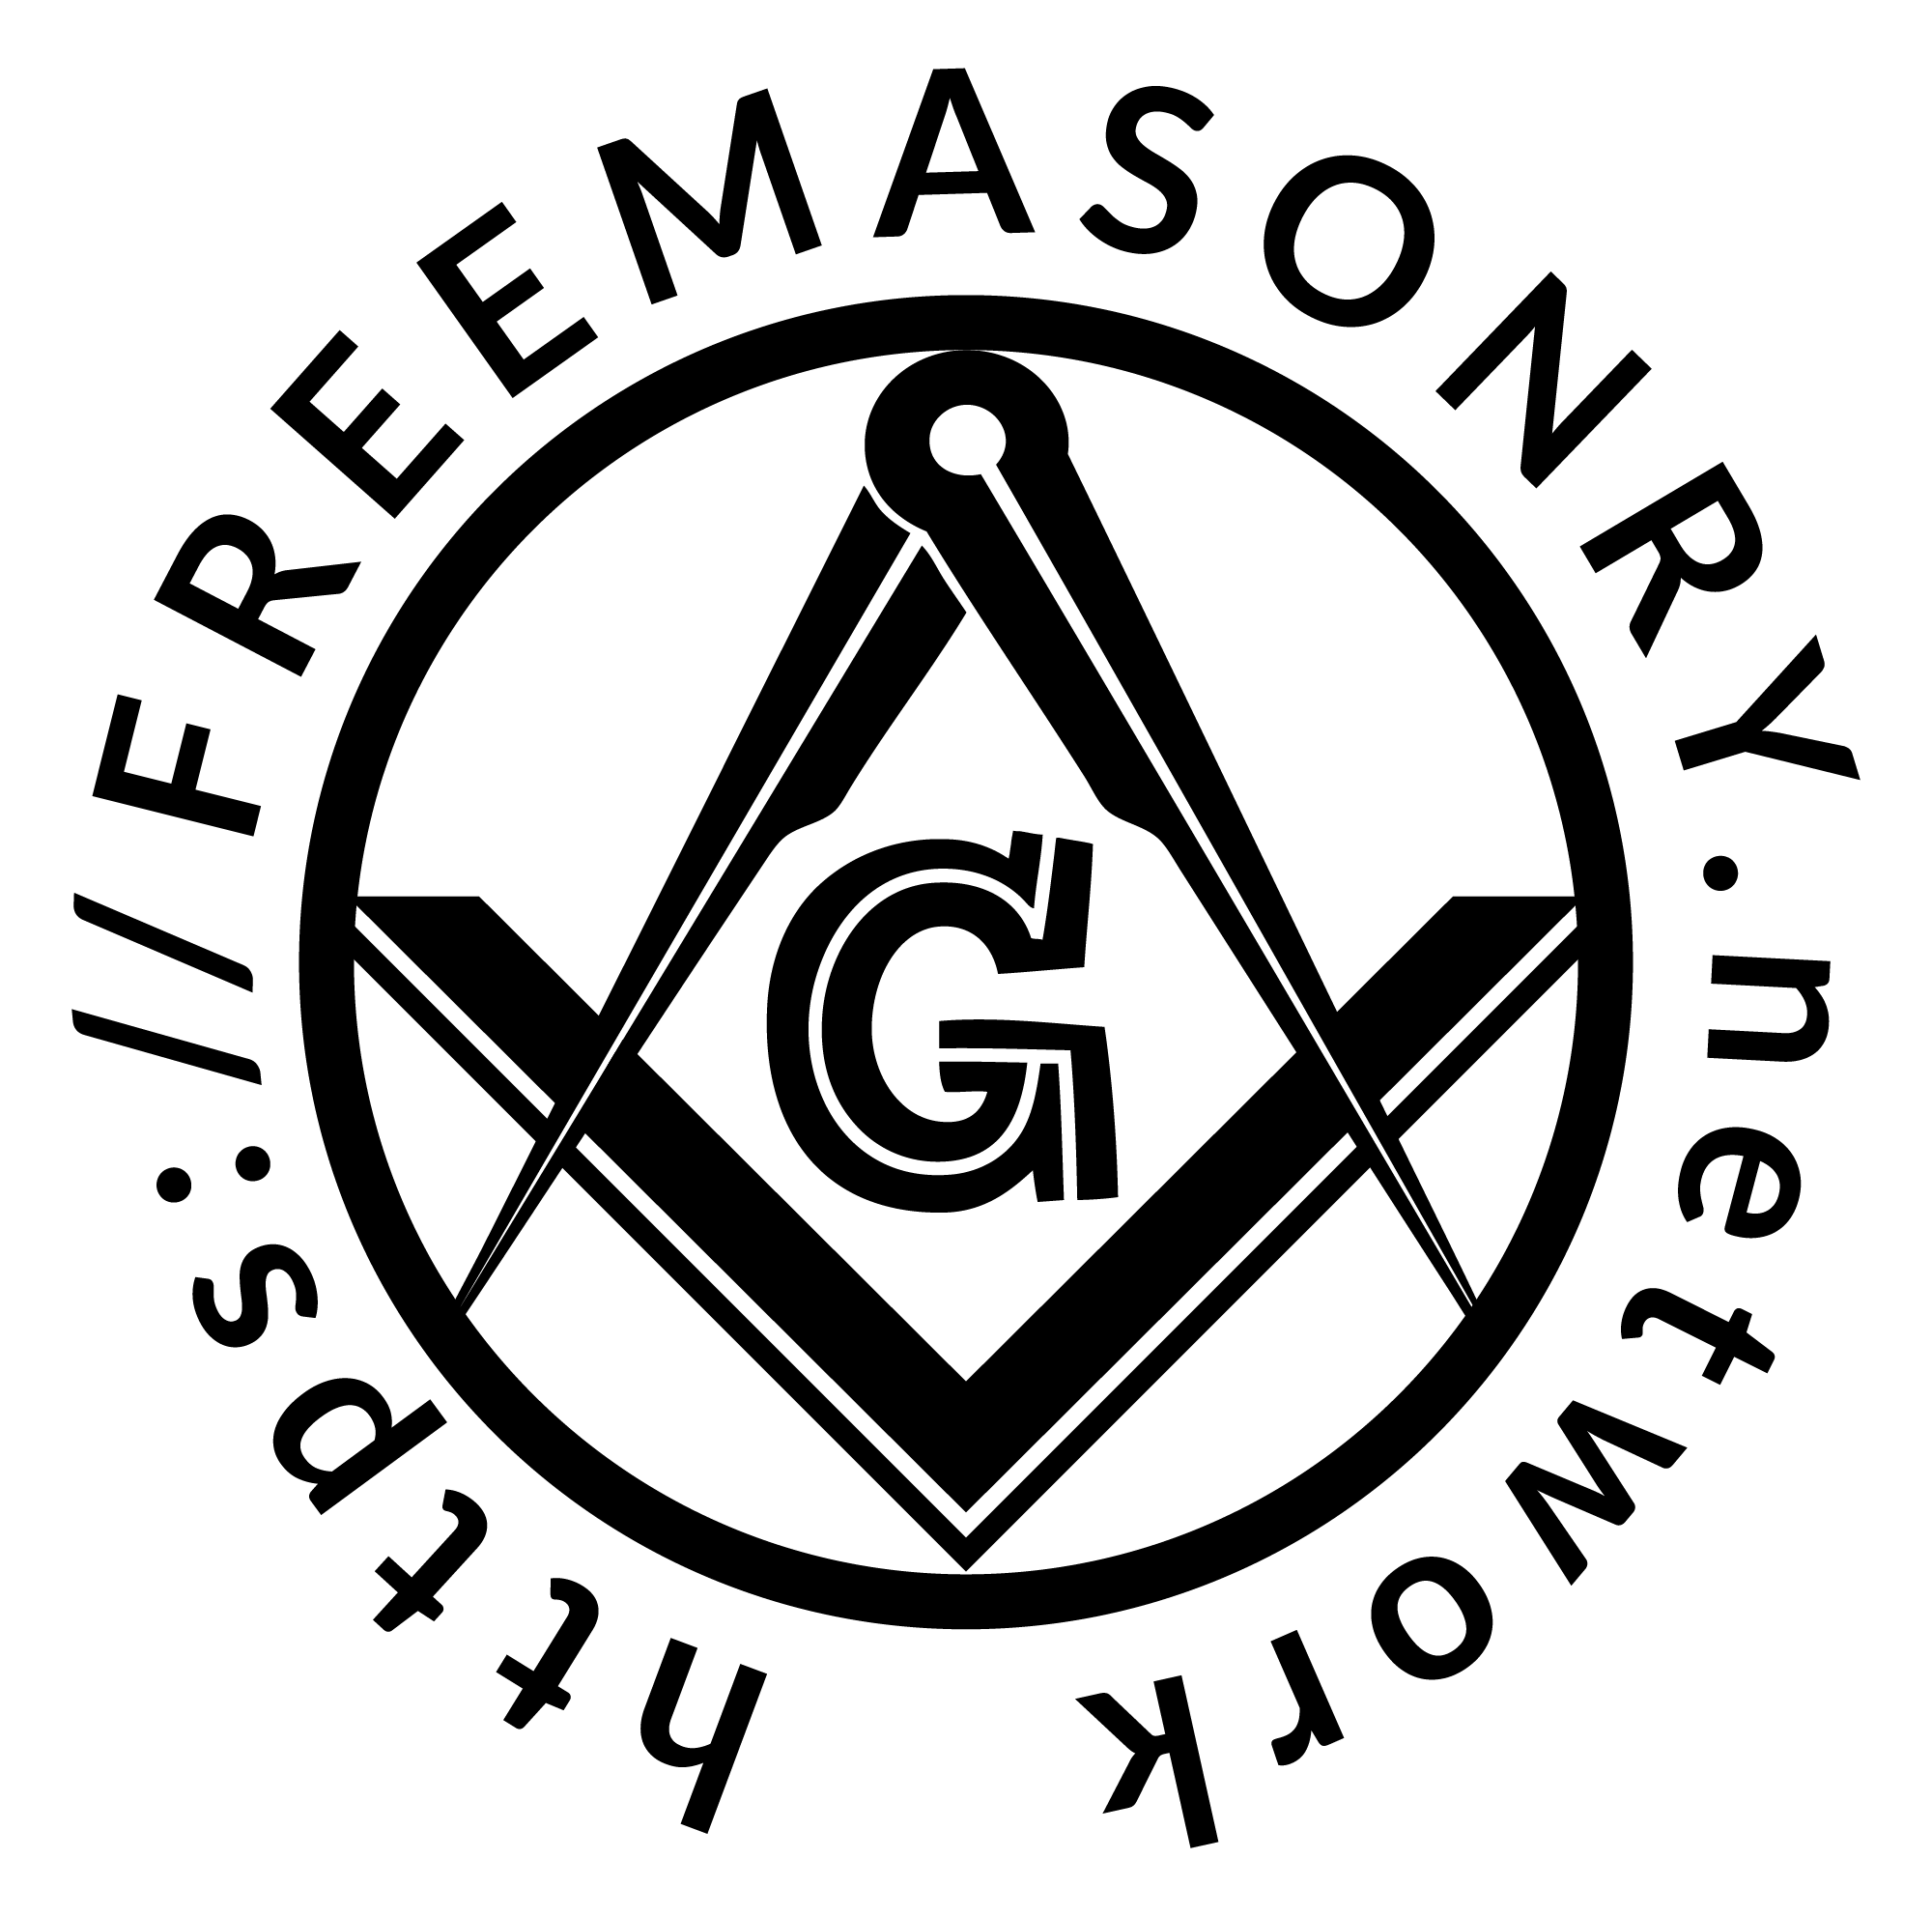 Freemasonry in Japan, Japaneese Freemasonry